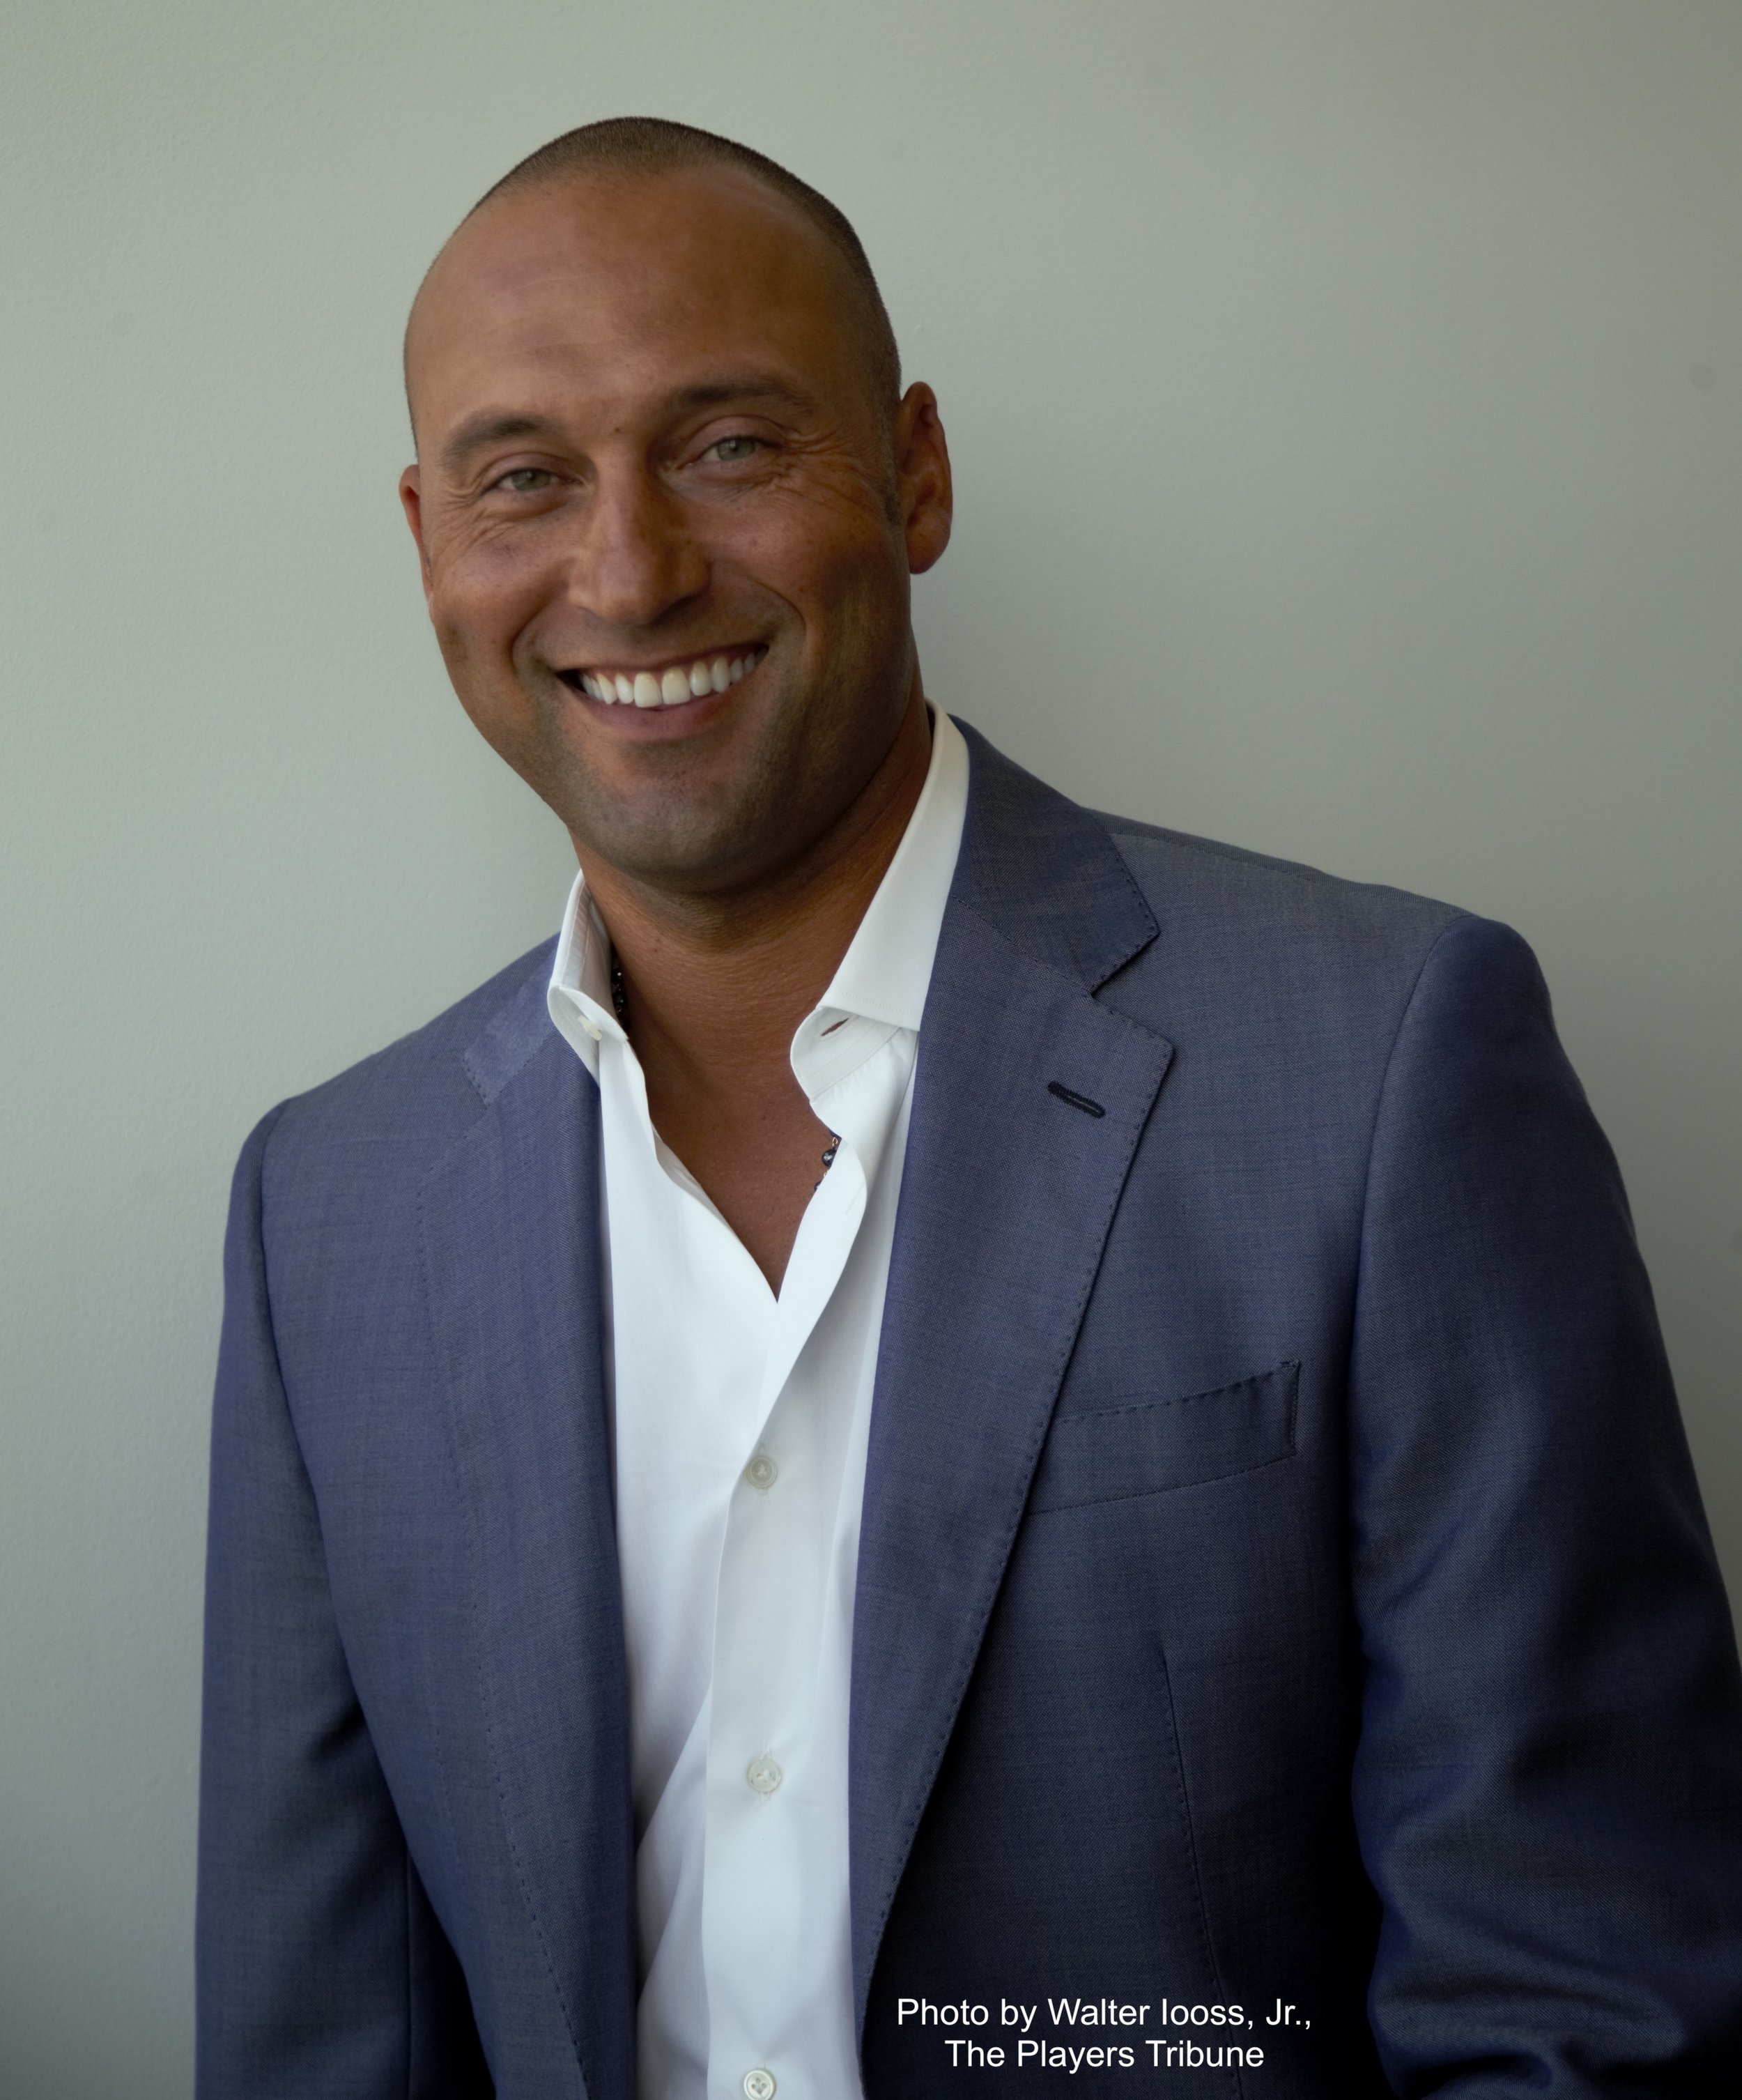 Derek_Jeter_Headshot - Photo Credit Required - Walter Iooss Jr. The Players Tribune.jpeg